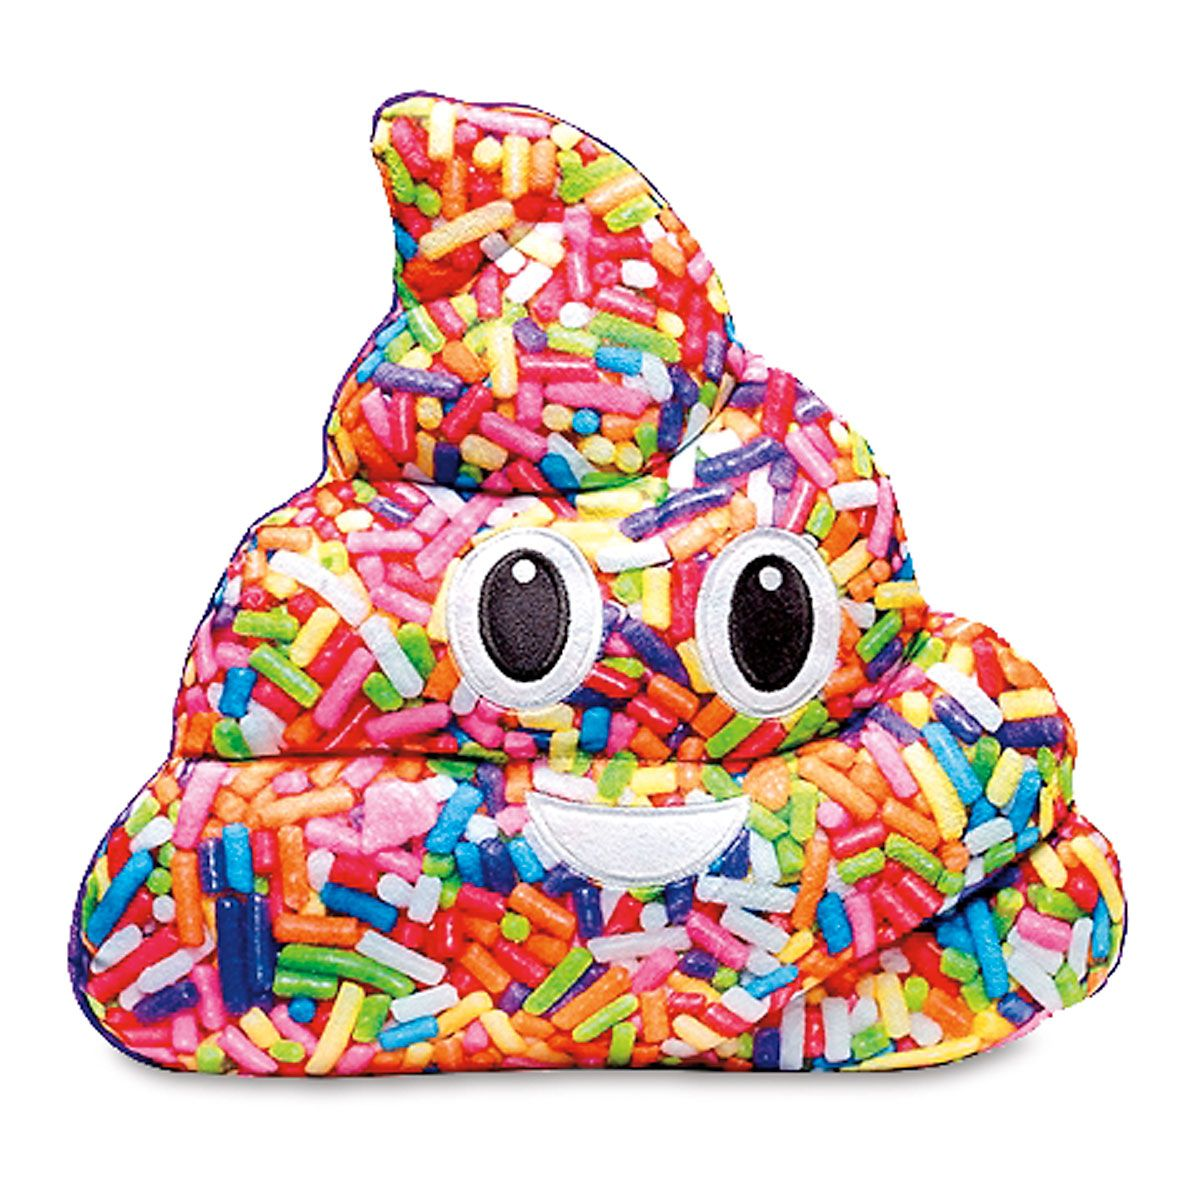 Sprinkle Poop Emoji Pillow